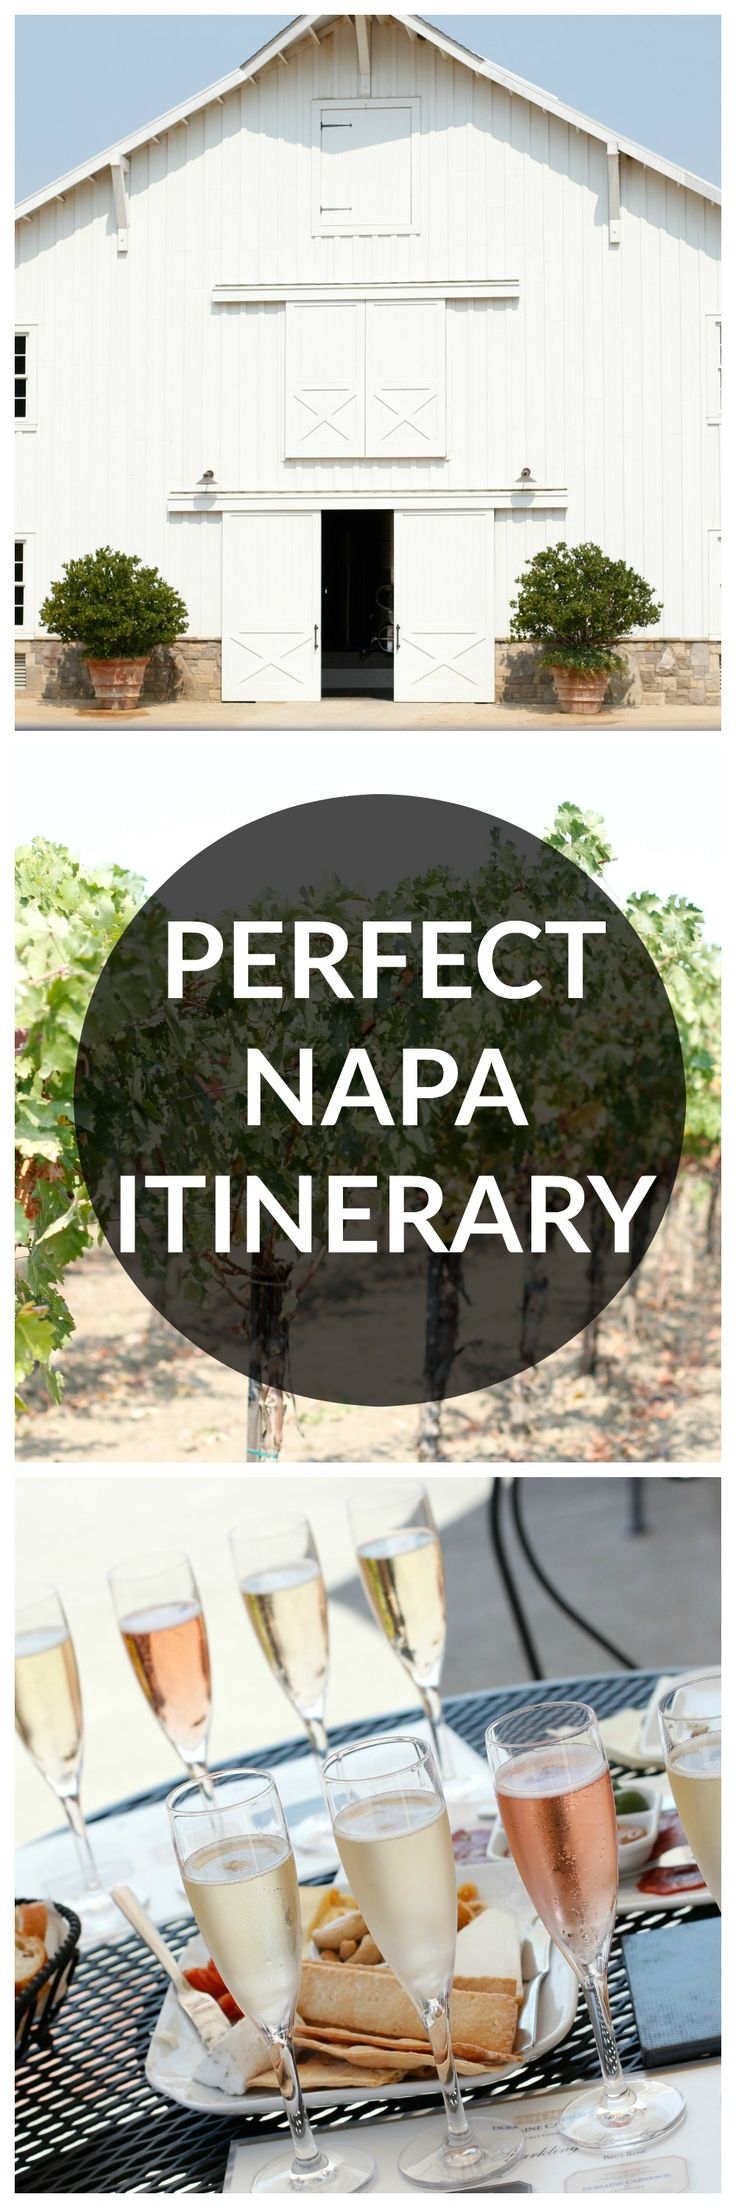 A Perfect Long Weekend in Napa | The Belle Voyage #napa #itinerary #packing #weekend Napa valley, Napa outfit, things to do in Napa, Napa wineries, Napa style, Napa what to wear, Napa fashion, Napa trip, Napa restaurants, Napa hotels.